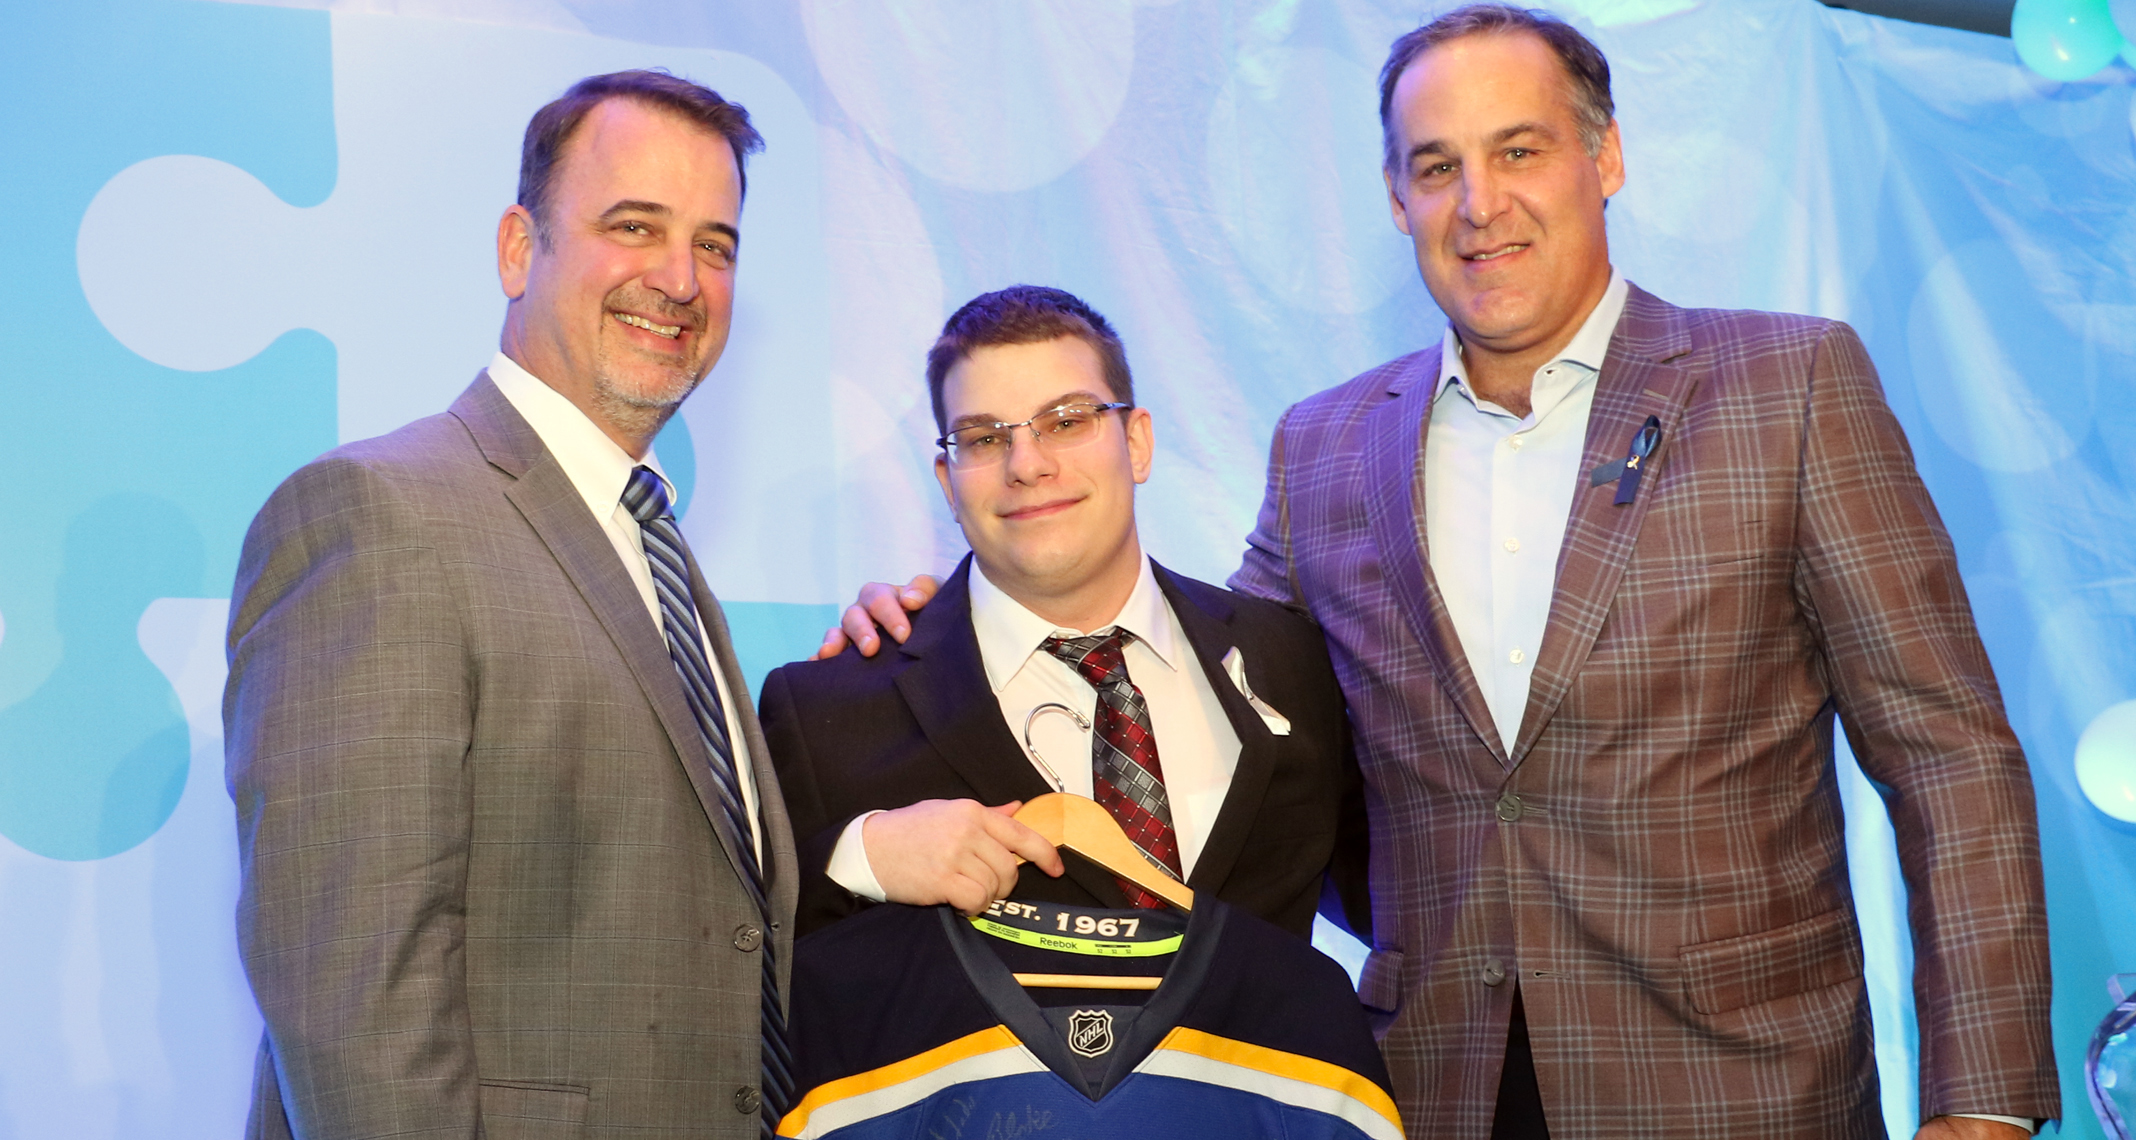 Picture of Stephen Kanne and Scott Mellanby at the Heroes Among Us gala